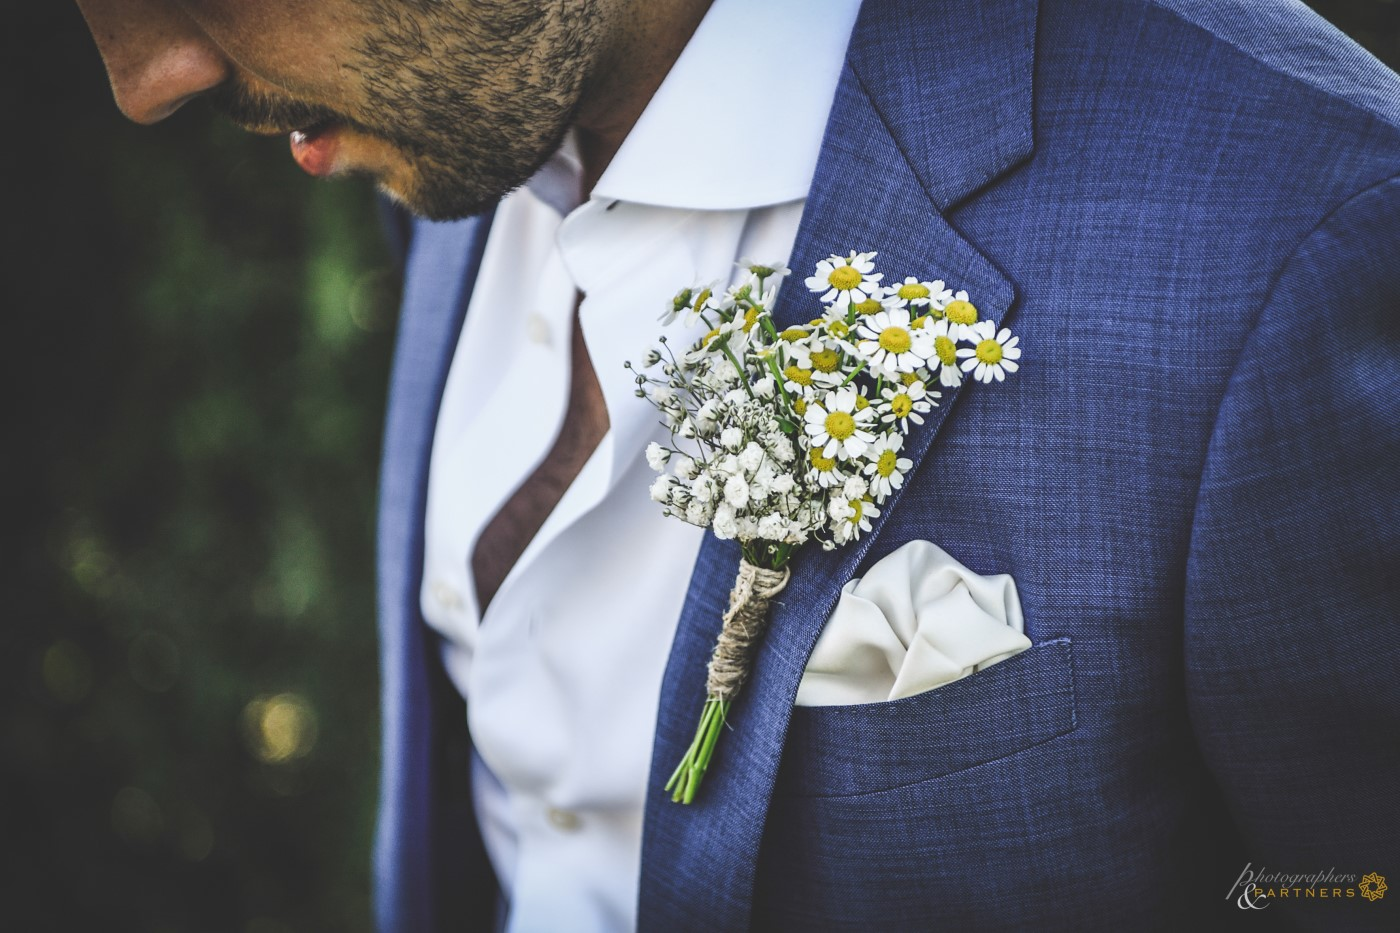 The groom's button flower.